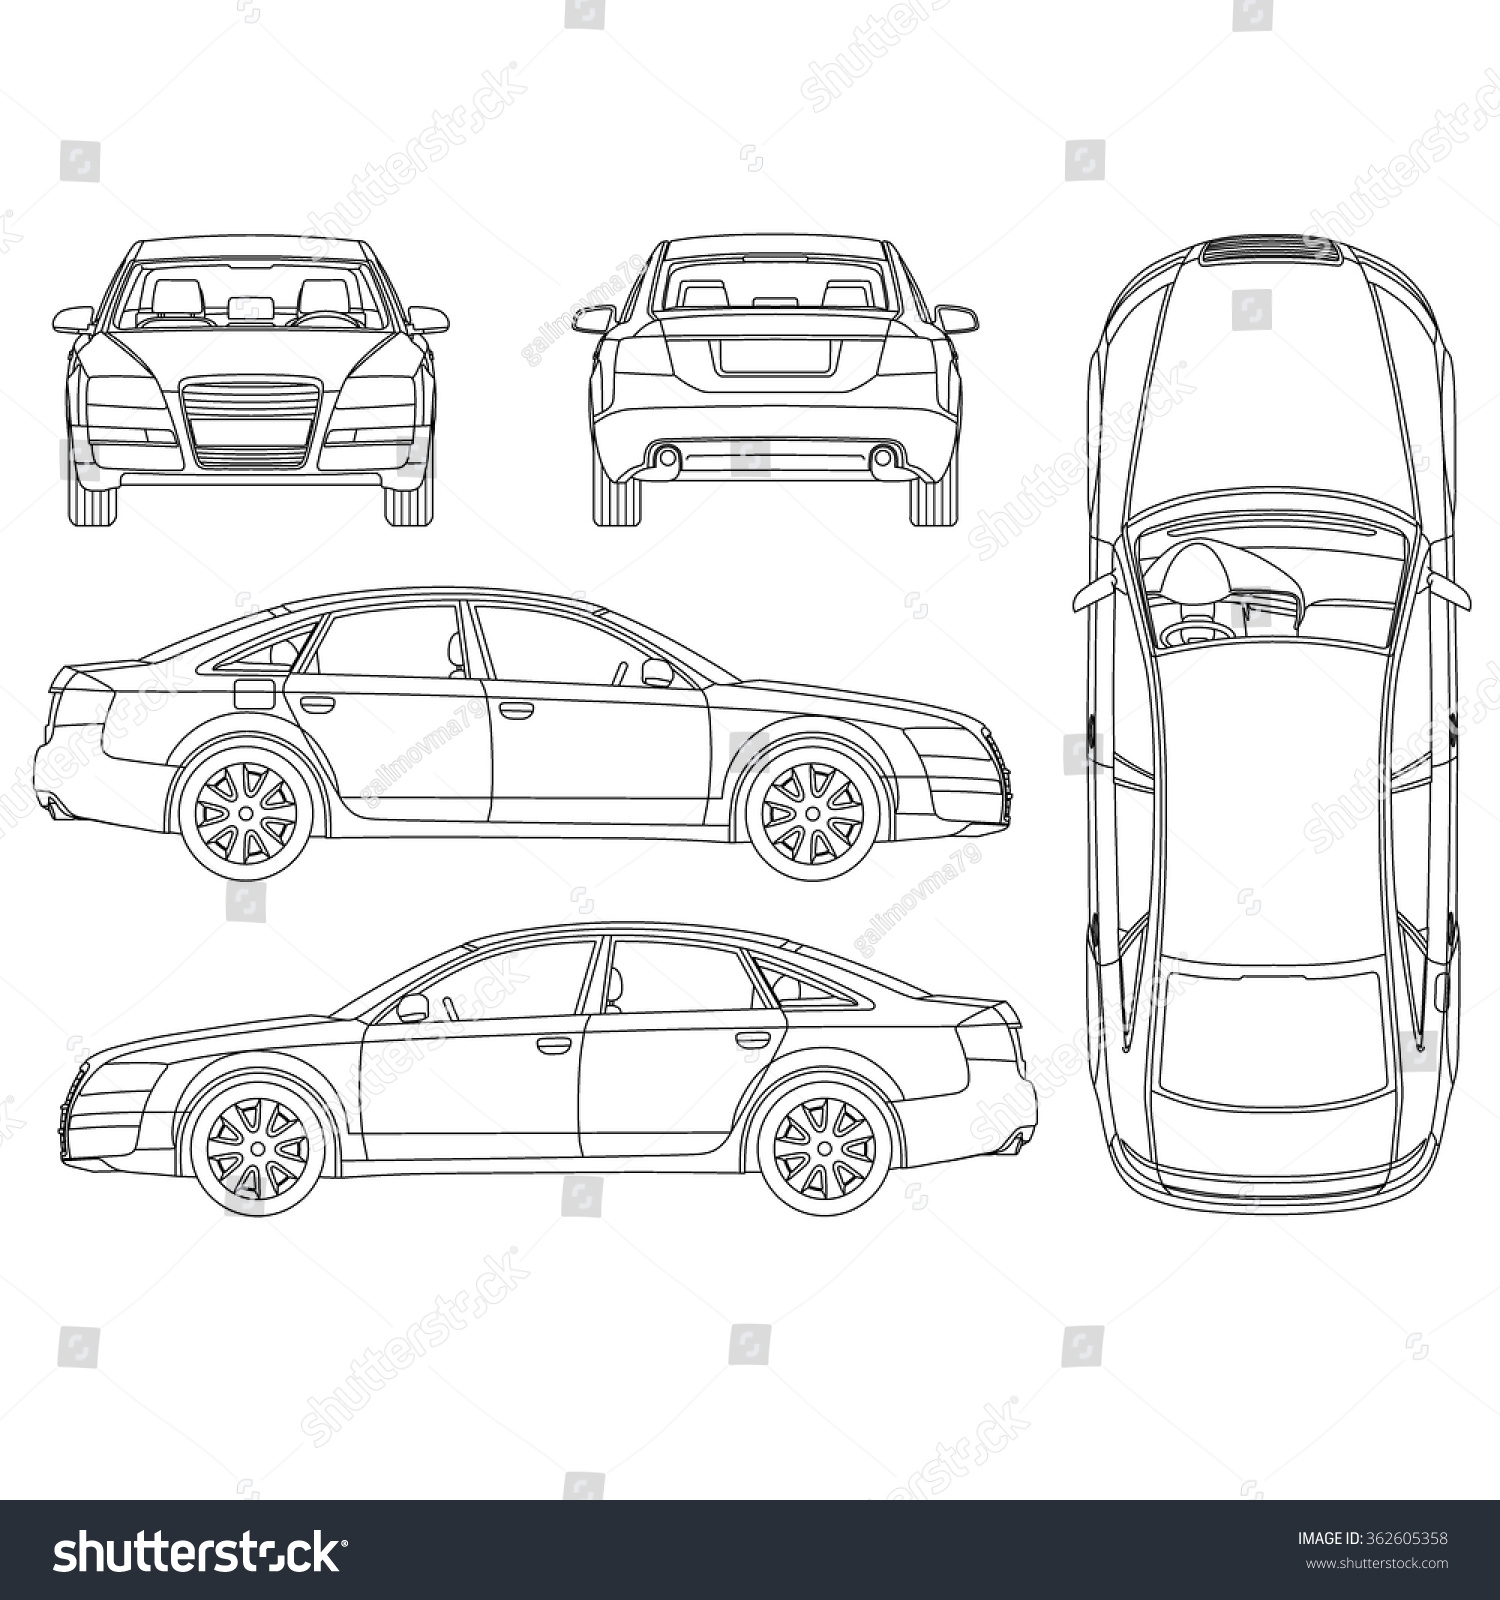 royalty free car line art all view four view top 362605358 stock photo. Black Bedroom Furniture Sets. Home Design Ideas